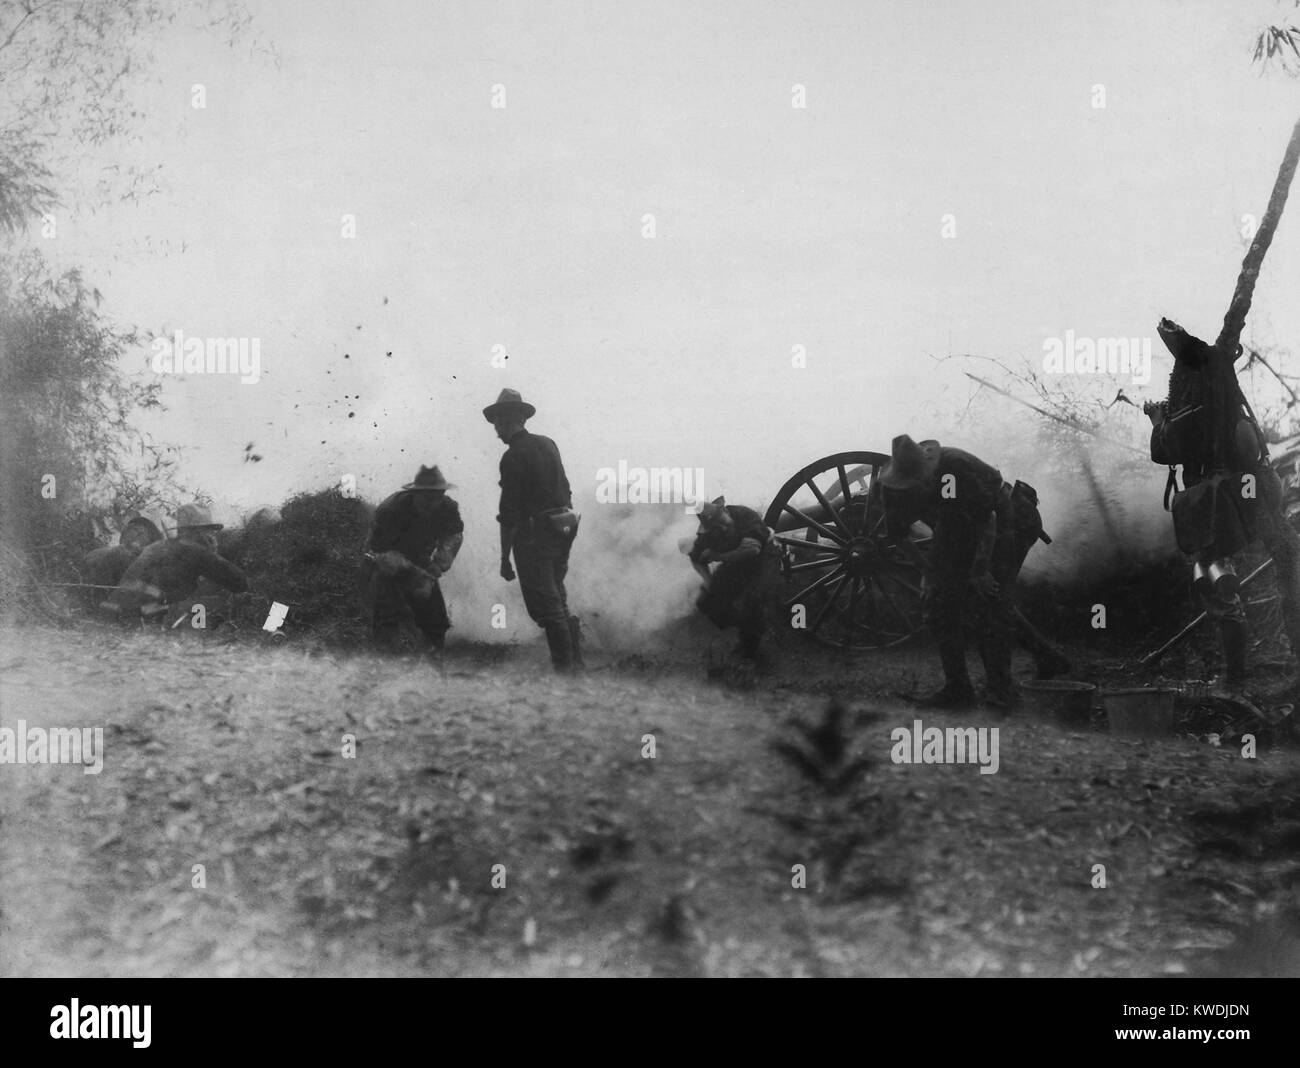 Philippine-American War fighting began on Feb. 4, 1899. Utah Battery on McCloud Hill, February 5, 1899, was firing - Stock Image